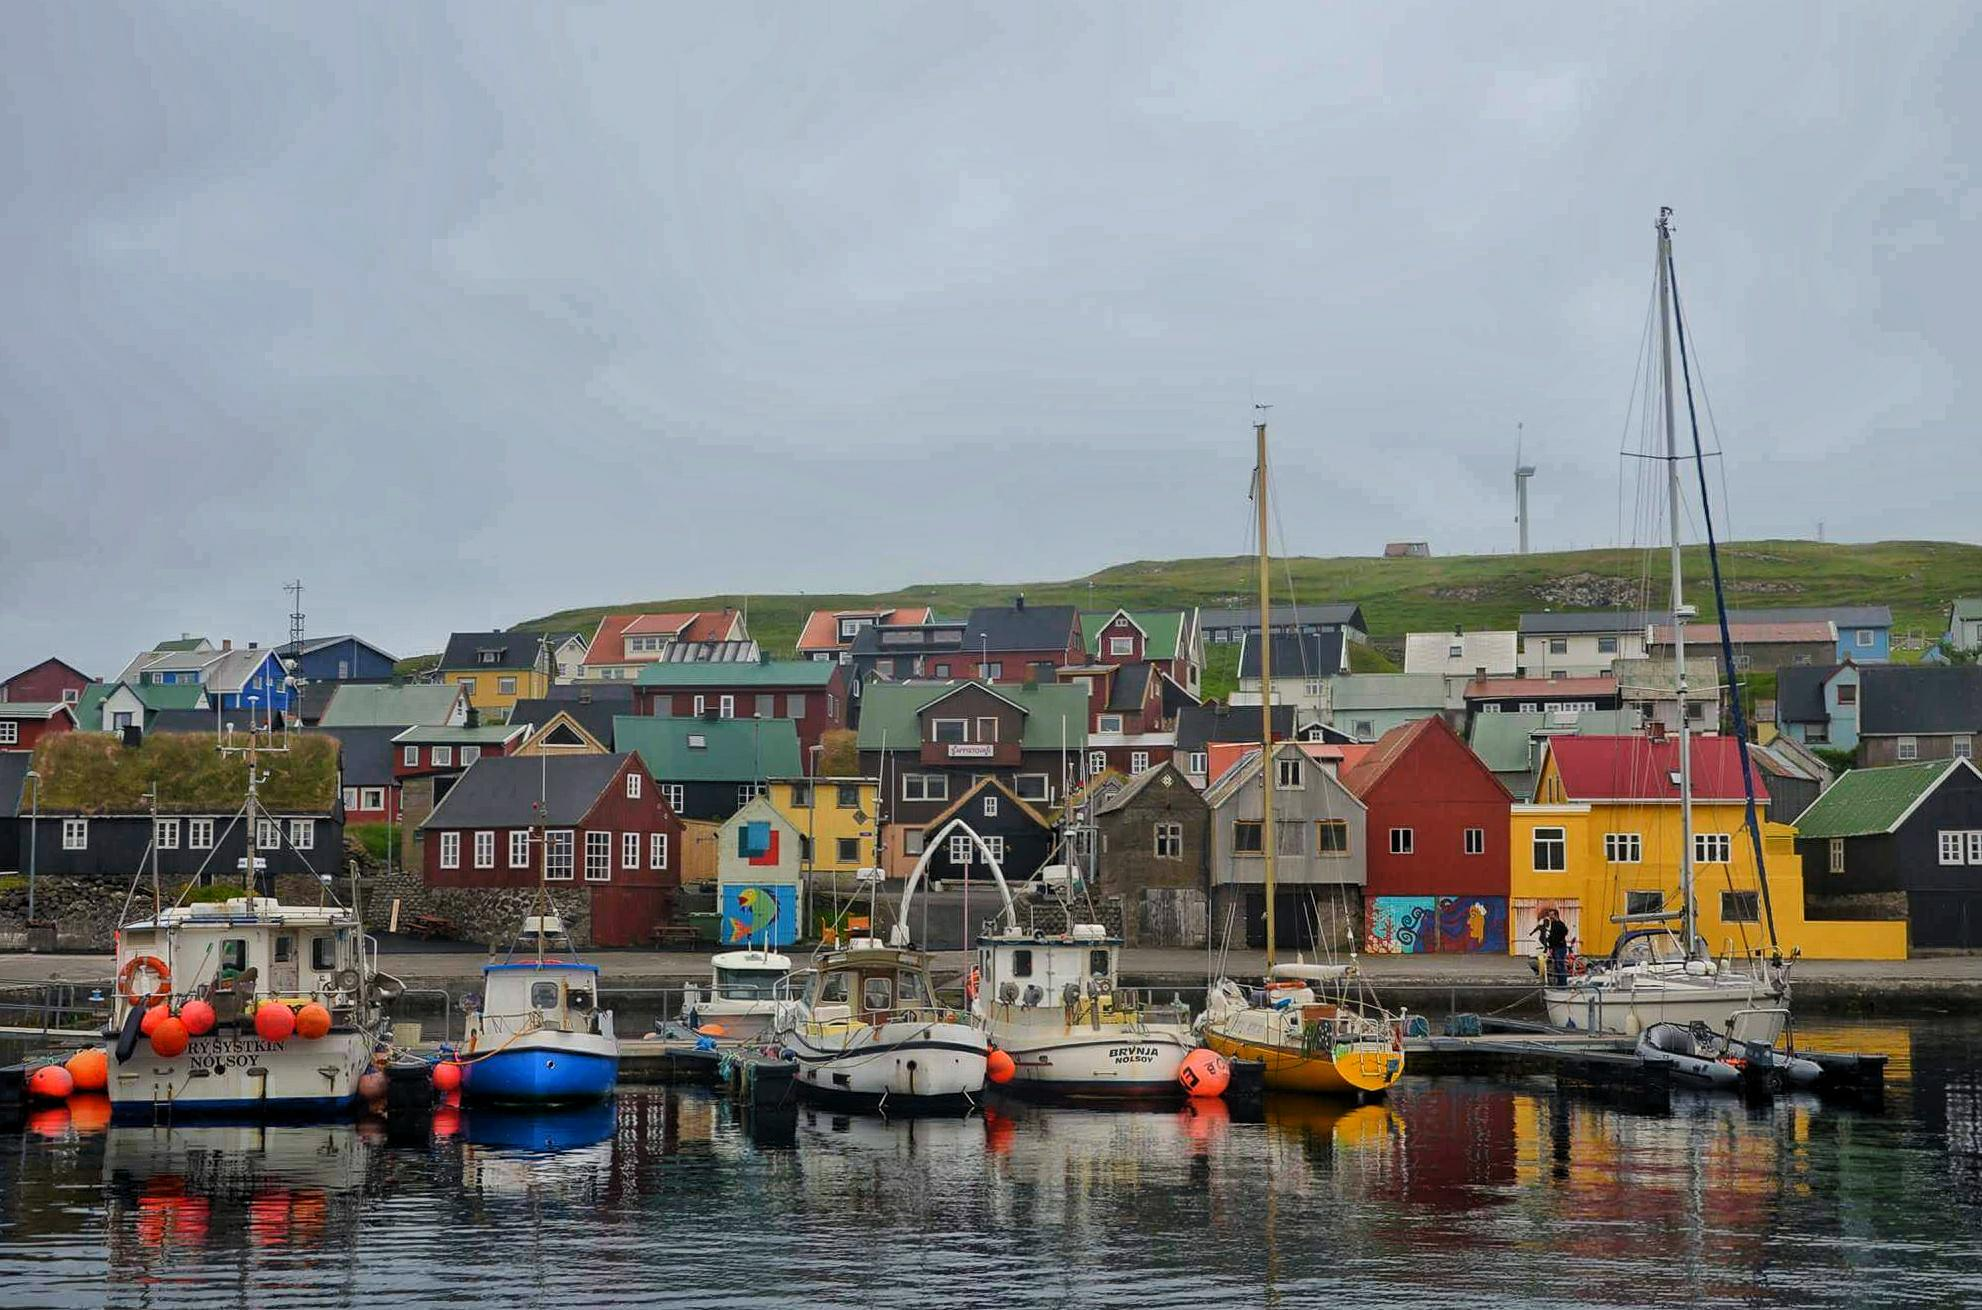 Nólsoy is an island and village in central Faroe Islands, 4 km east of the capital Tórshavn in Streymoy.